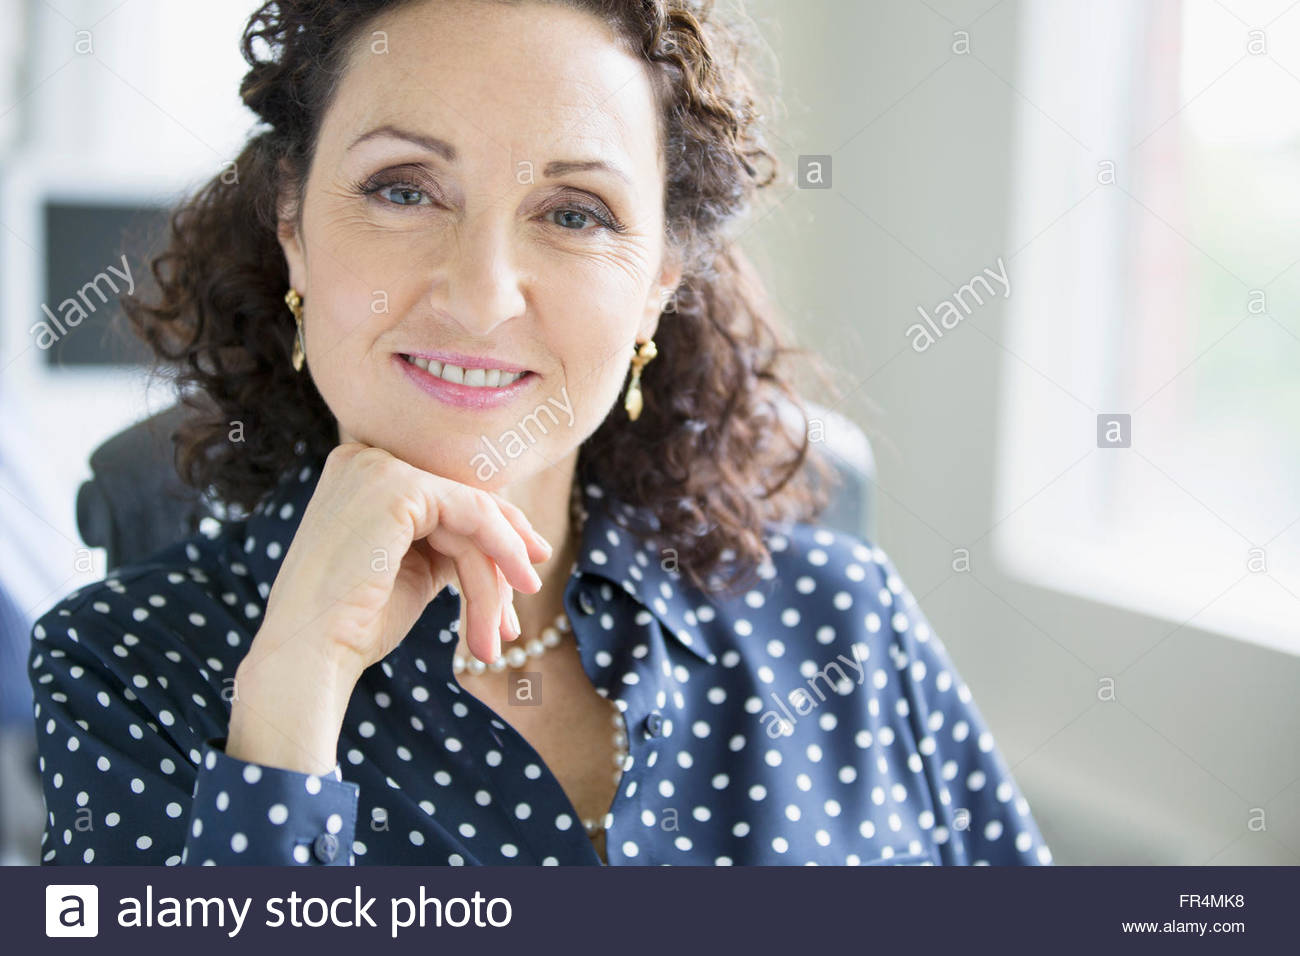 Portrait of pretty, middle-aged woman at office Photo Stock